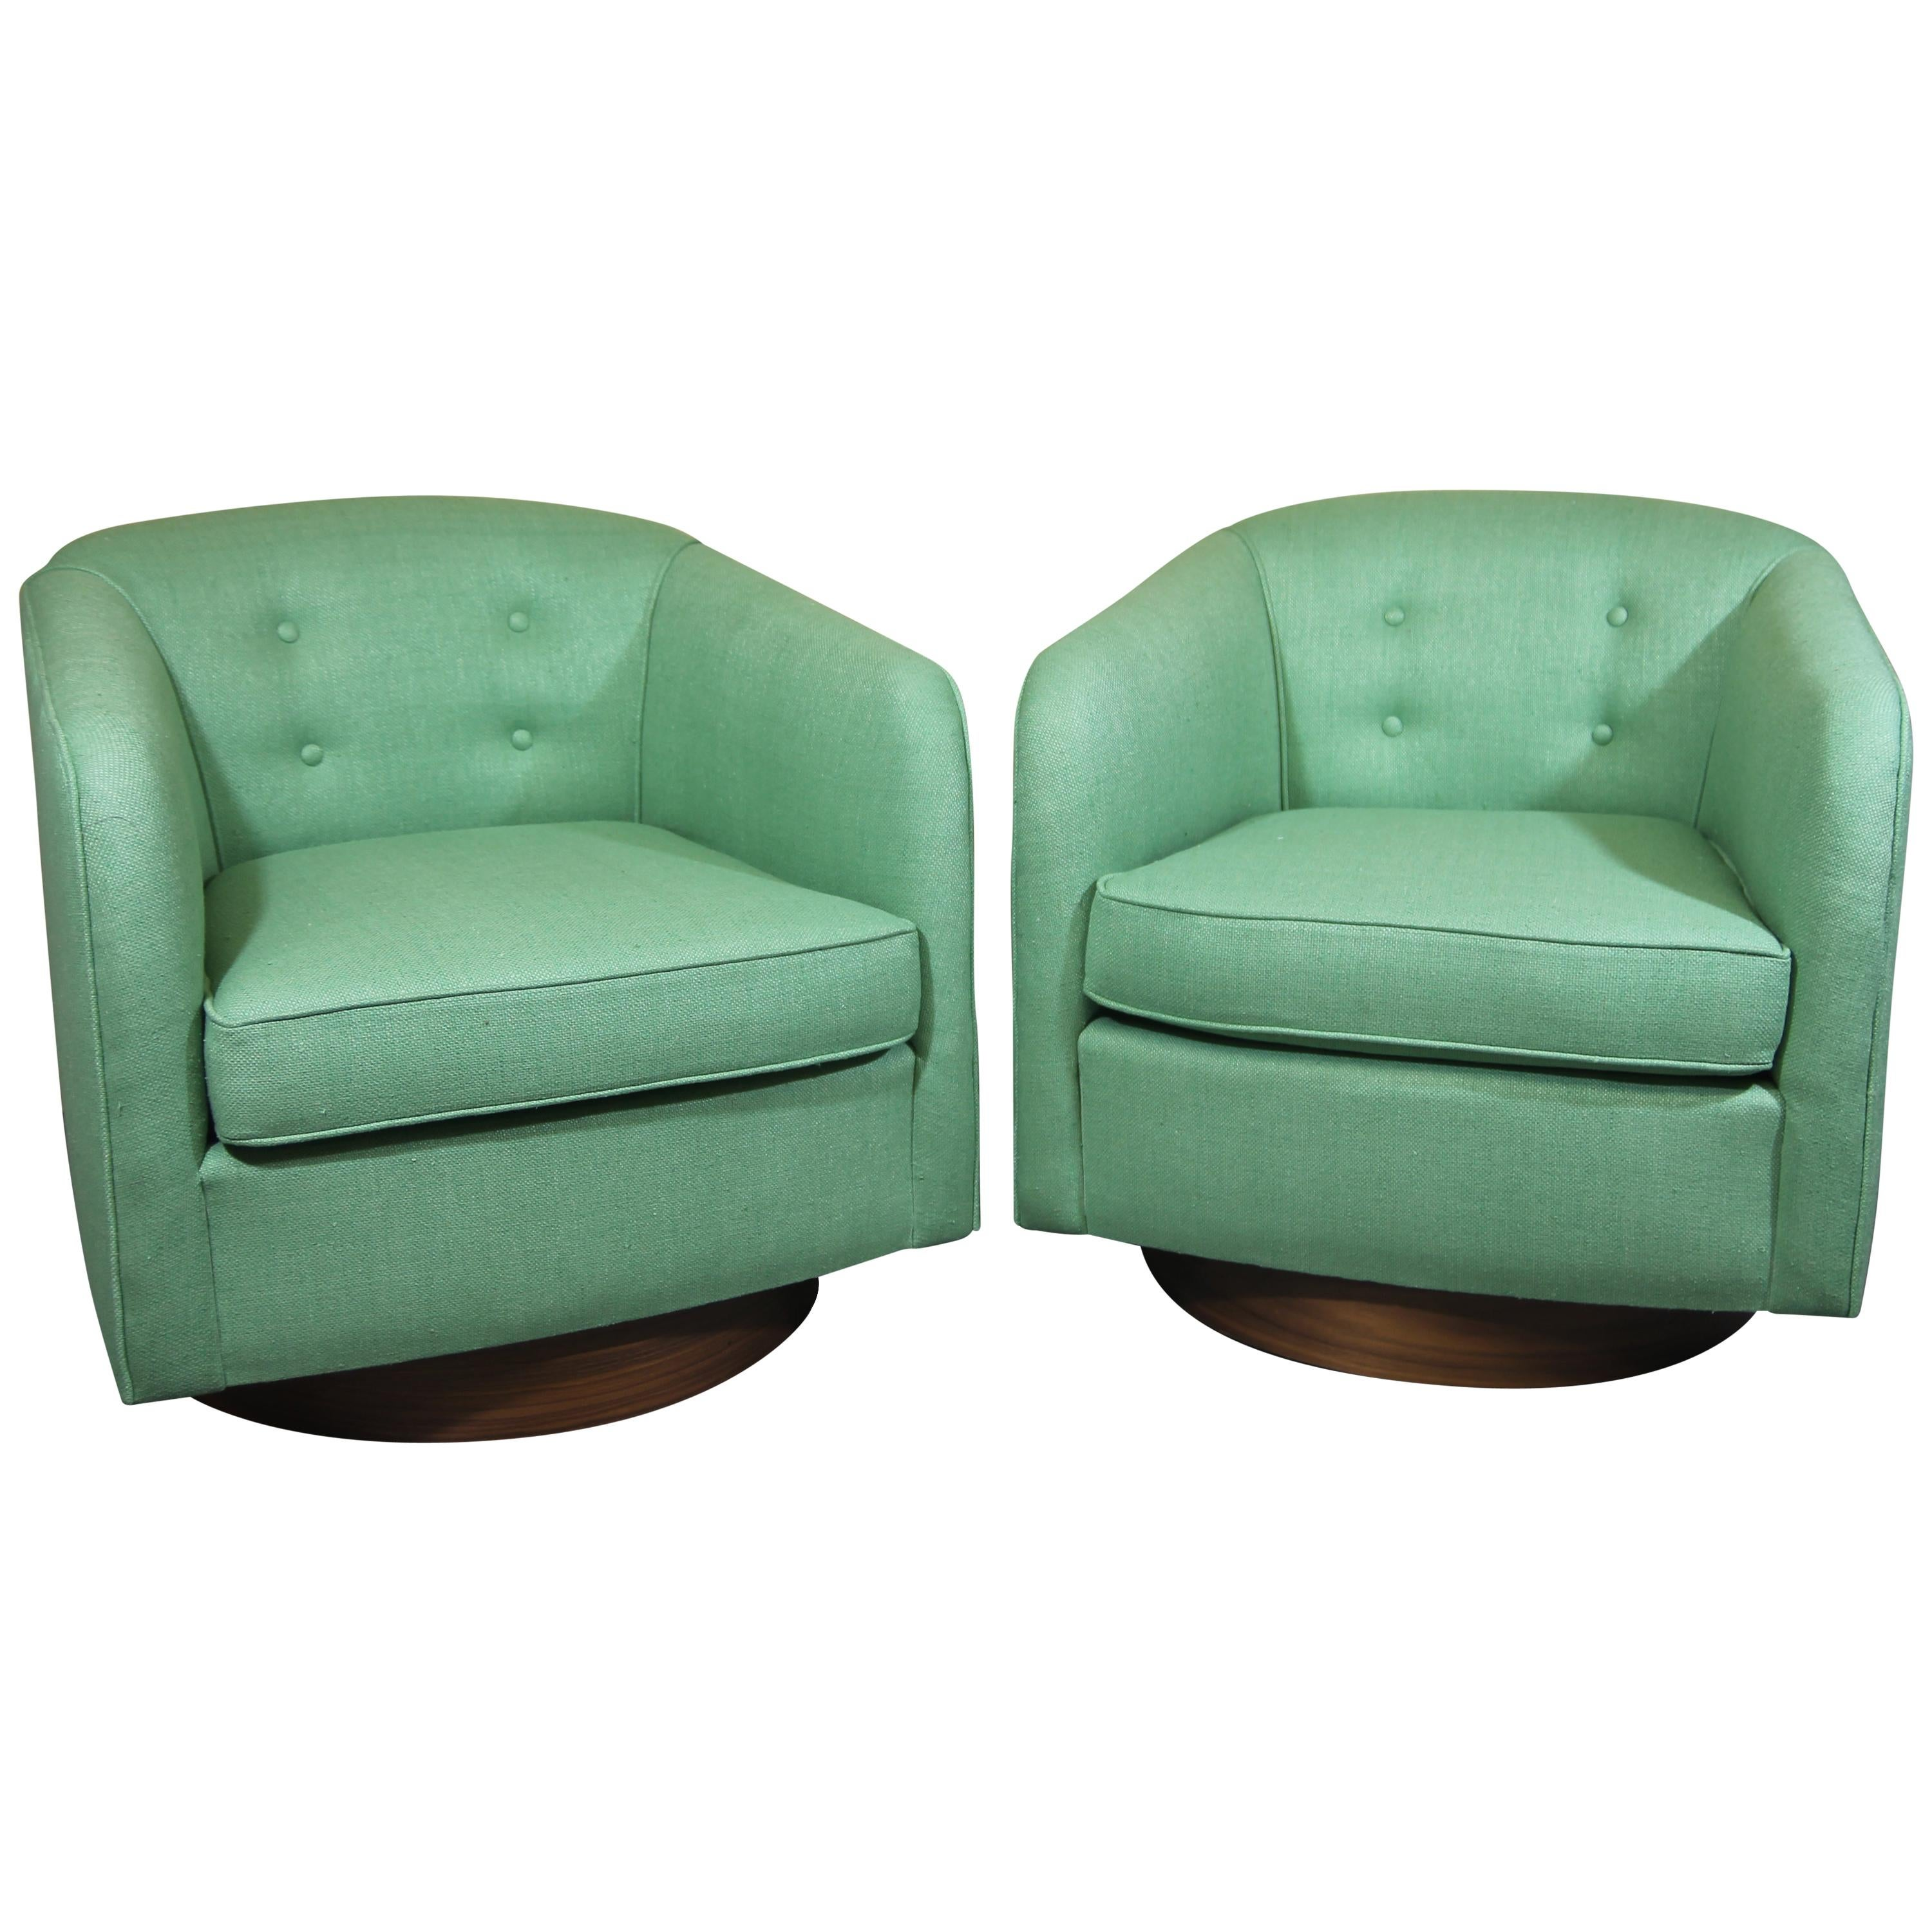 Midcentury Swivel Lounge Chairs in the Style of Milo Baughman